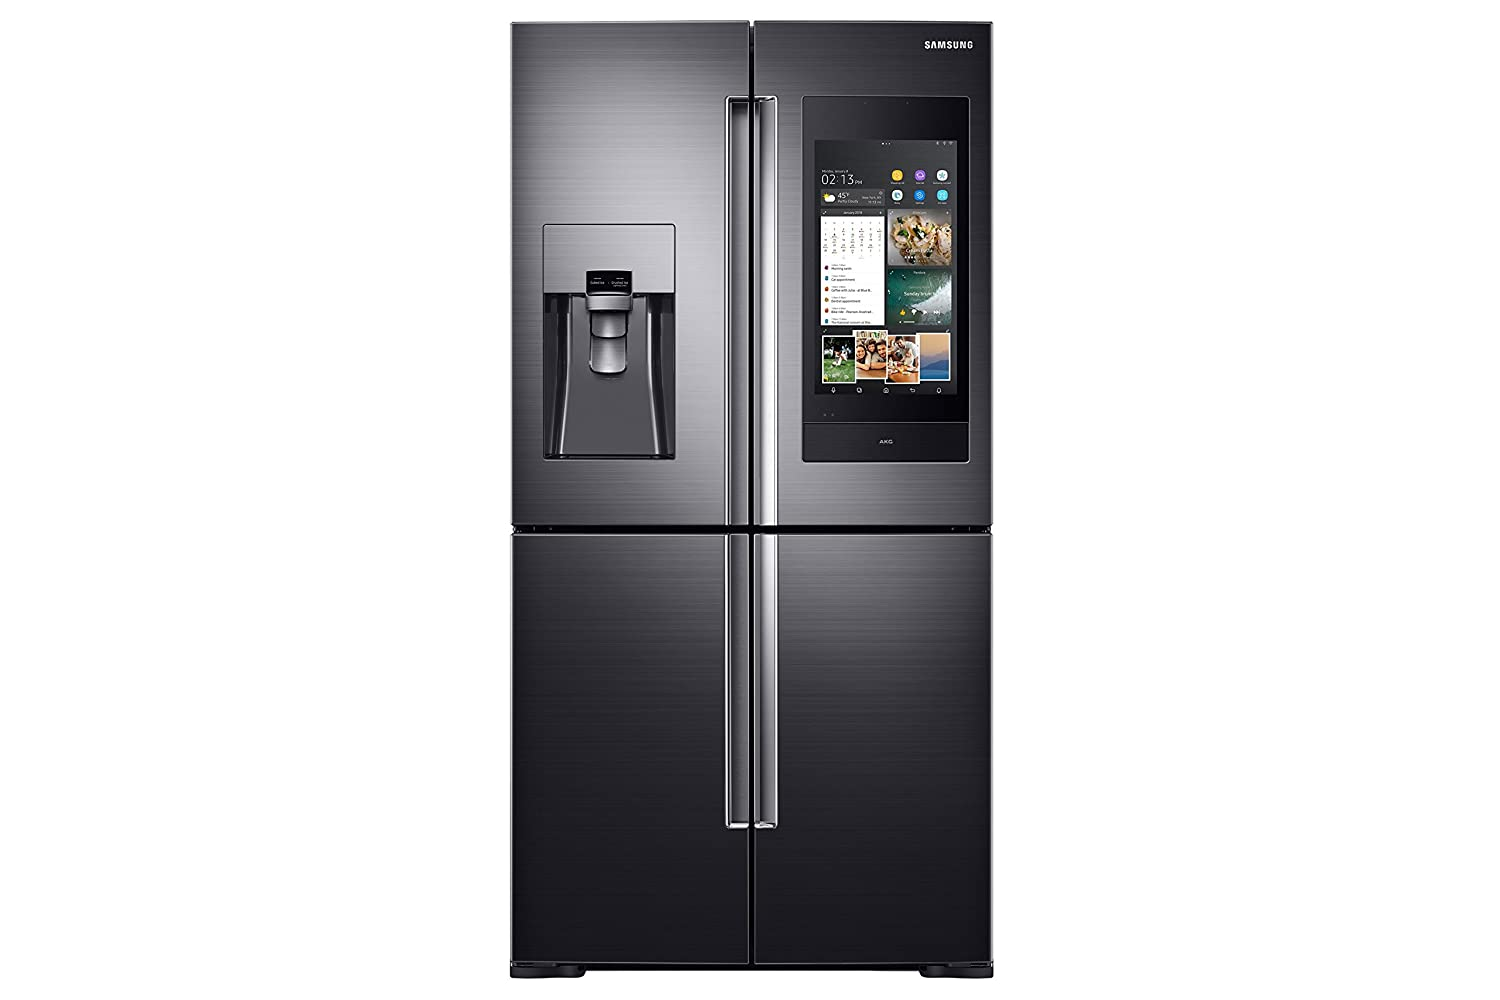 Samsung 810 L Frost Free Side-by-Side Refrigerator